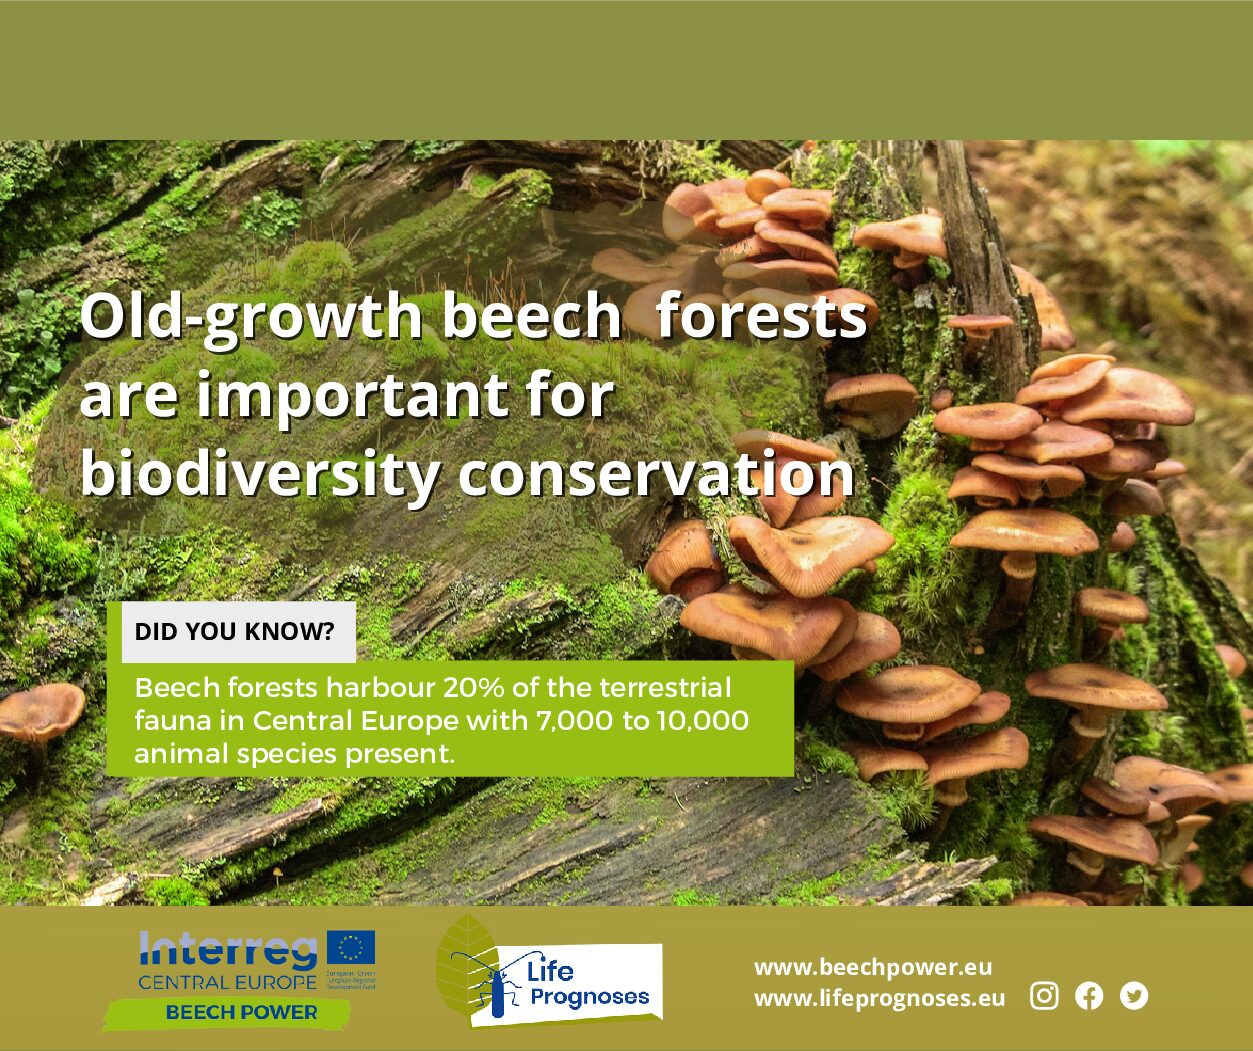 Old-growth beech forest are important for biodiversity conservation